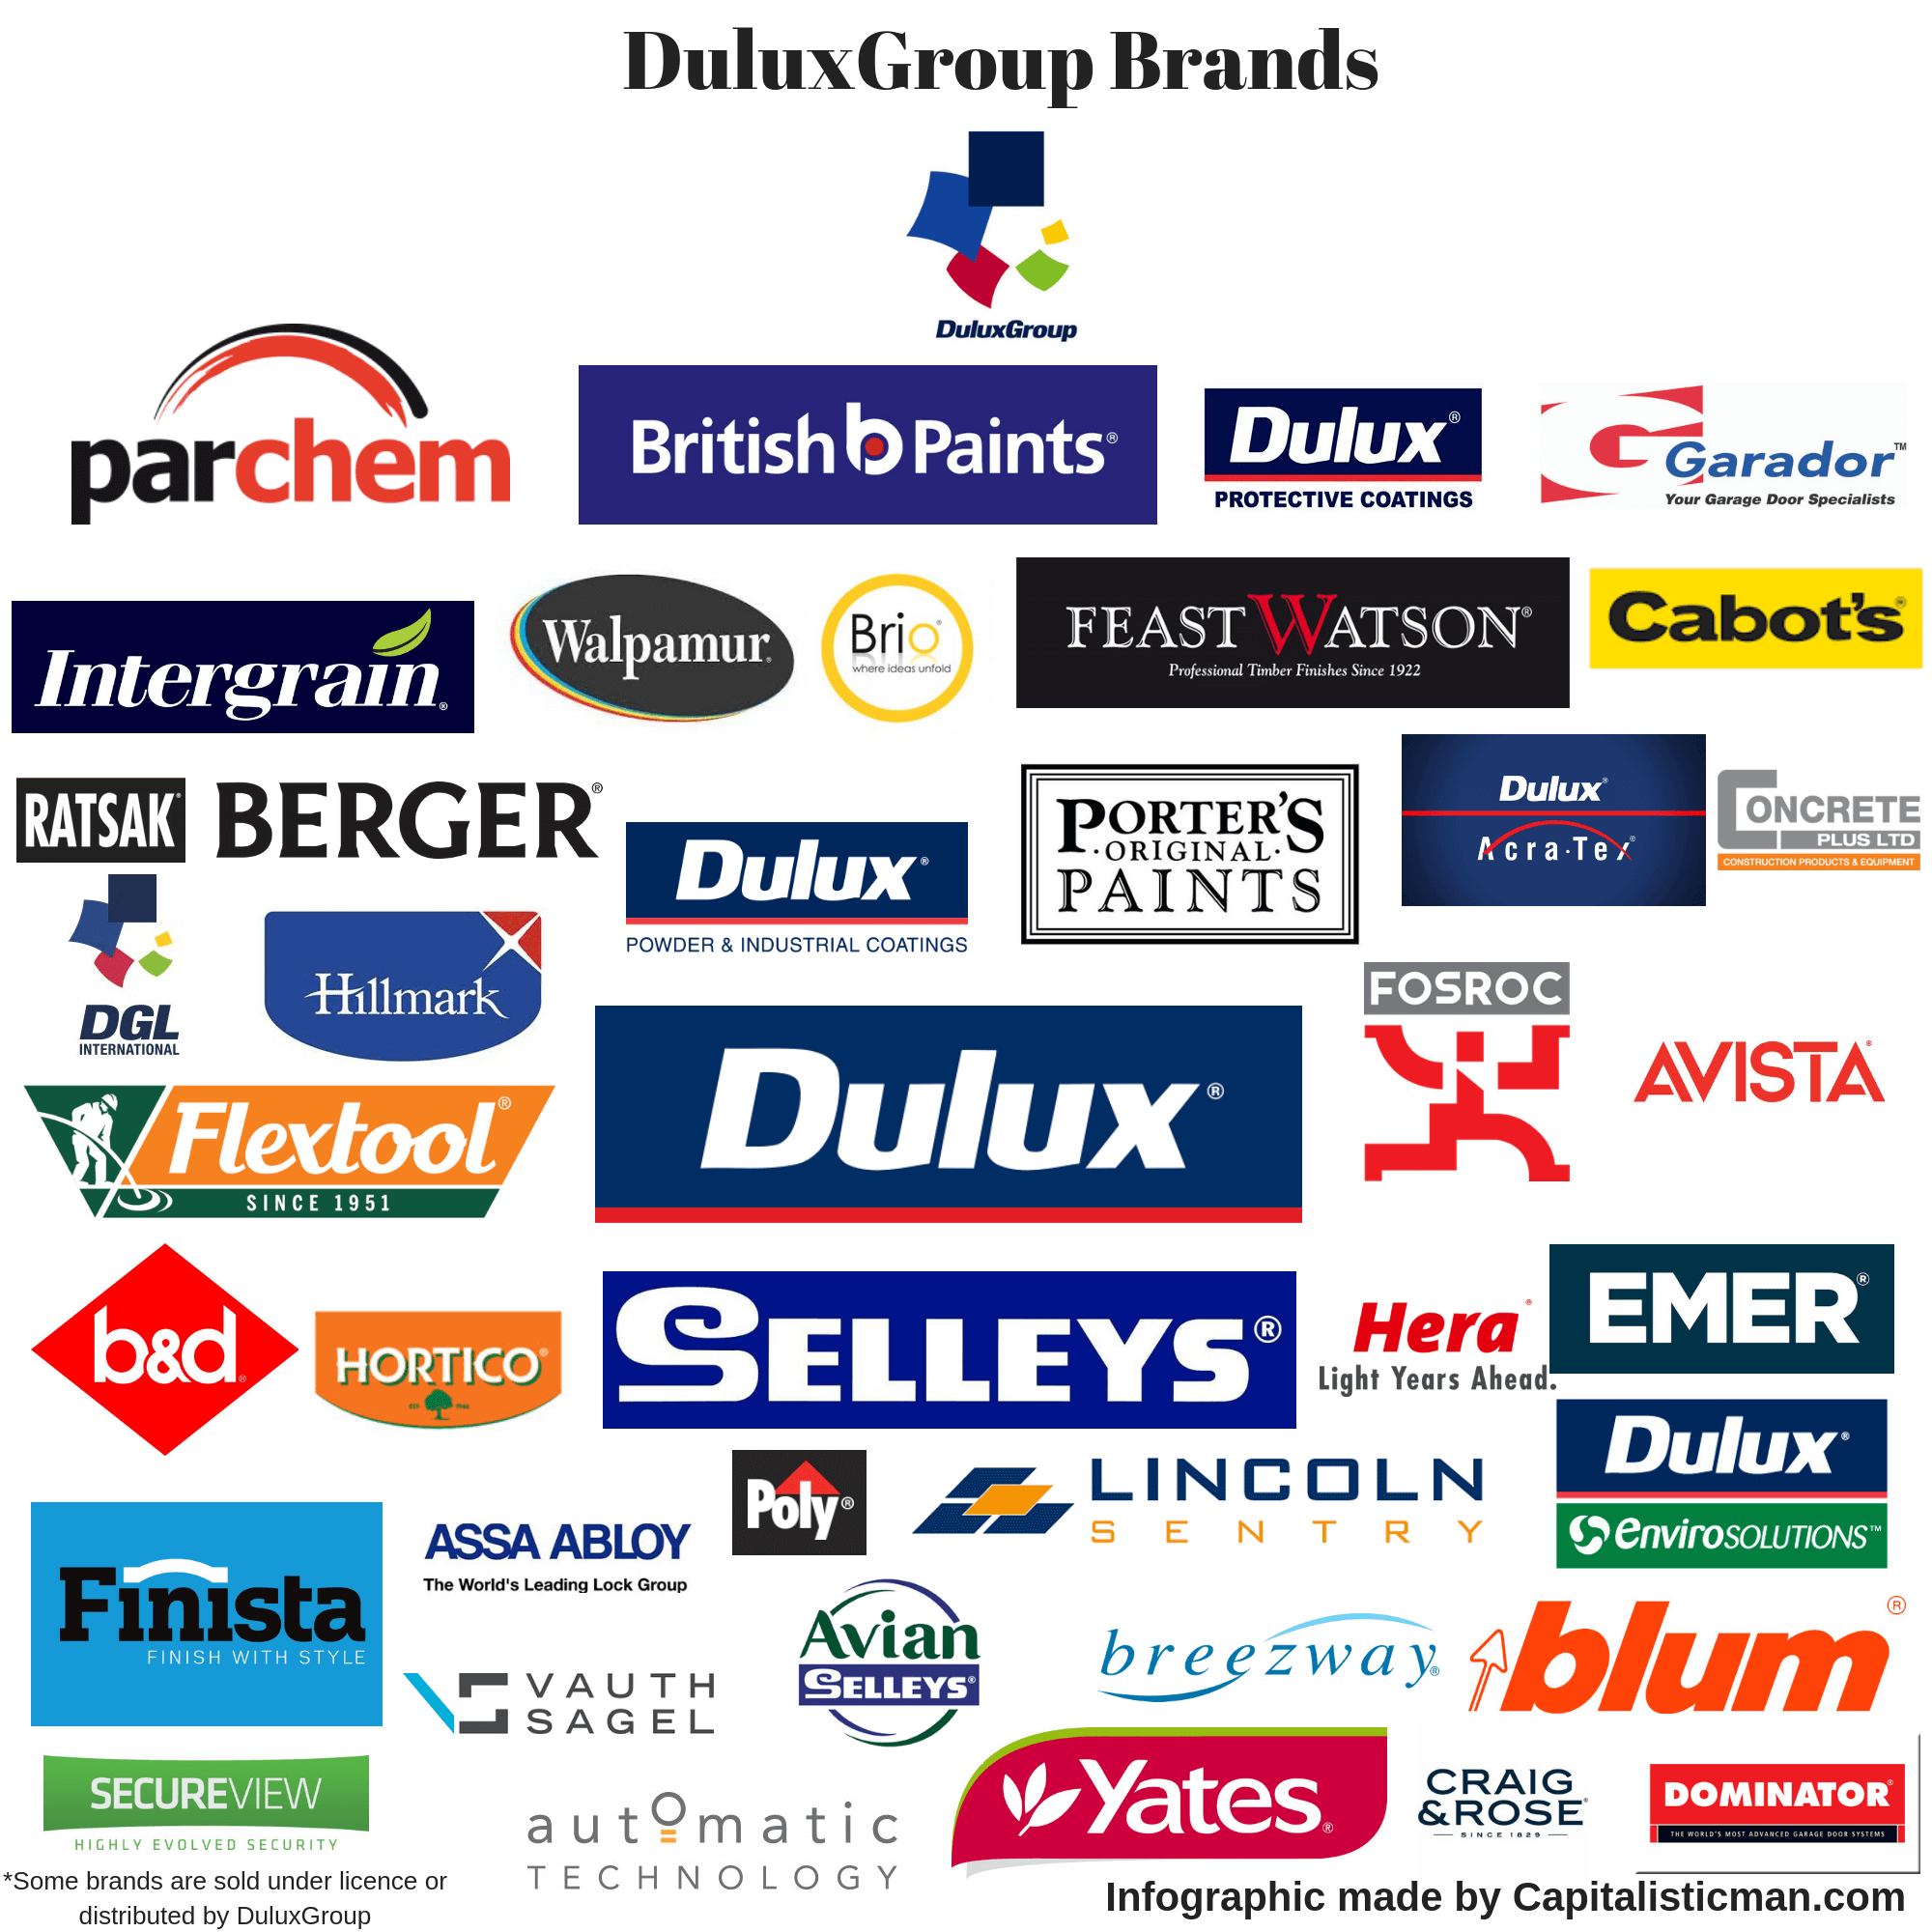 DuluxGroup to be acquired by Nippon Paints for $9 80 per share